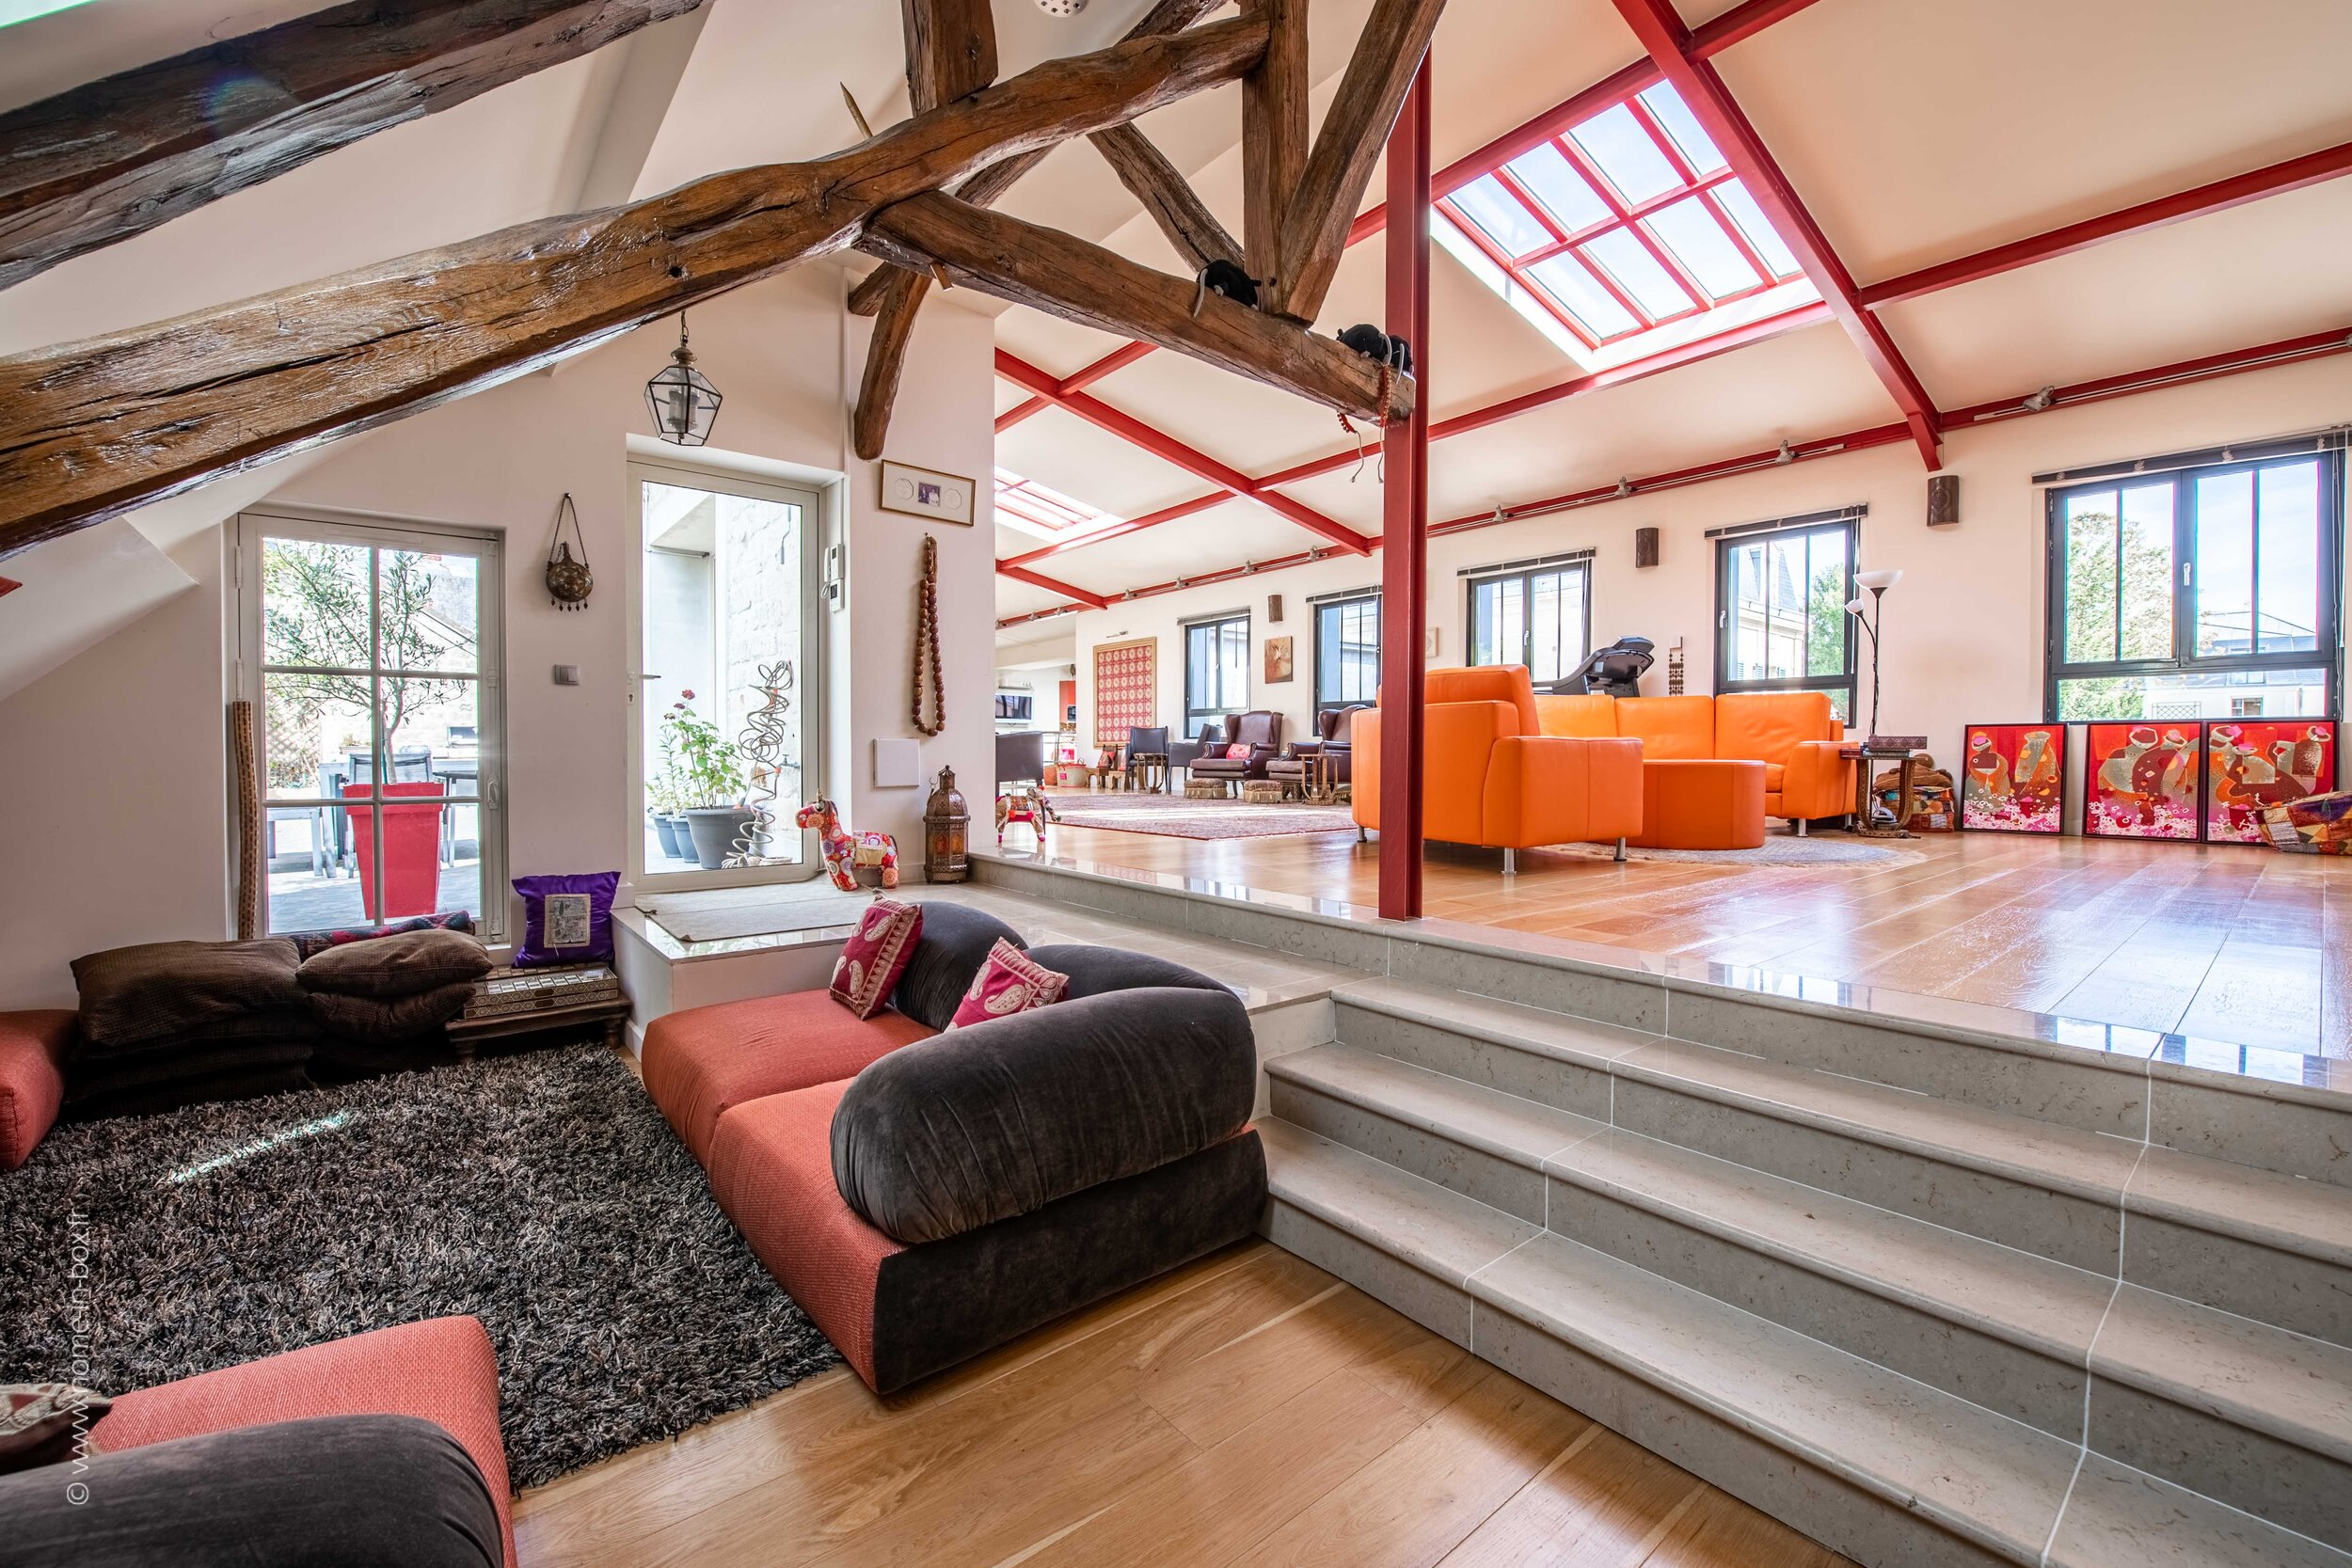 LOFT APARTMENT LUXURY T10 IN CHANTILLY FRANCE...22 Minutes ...